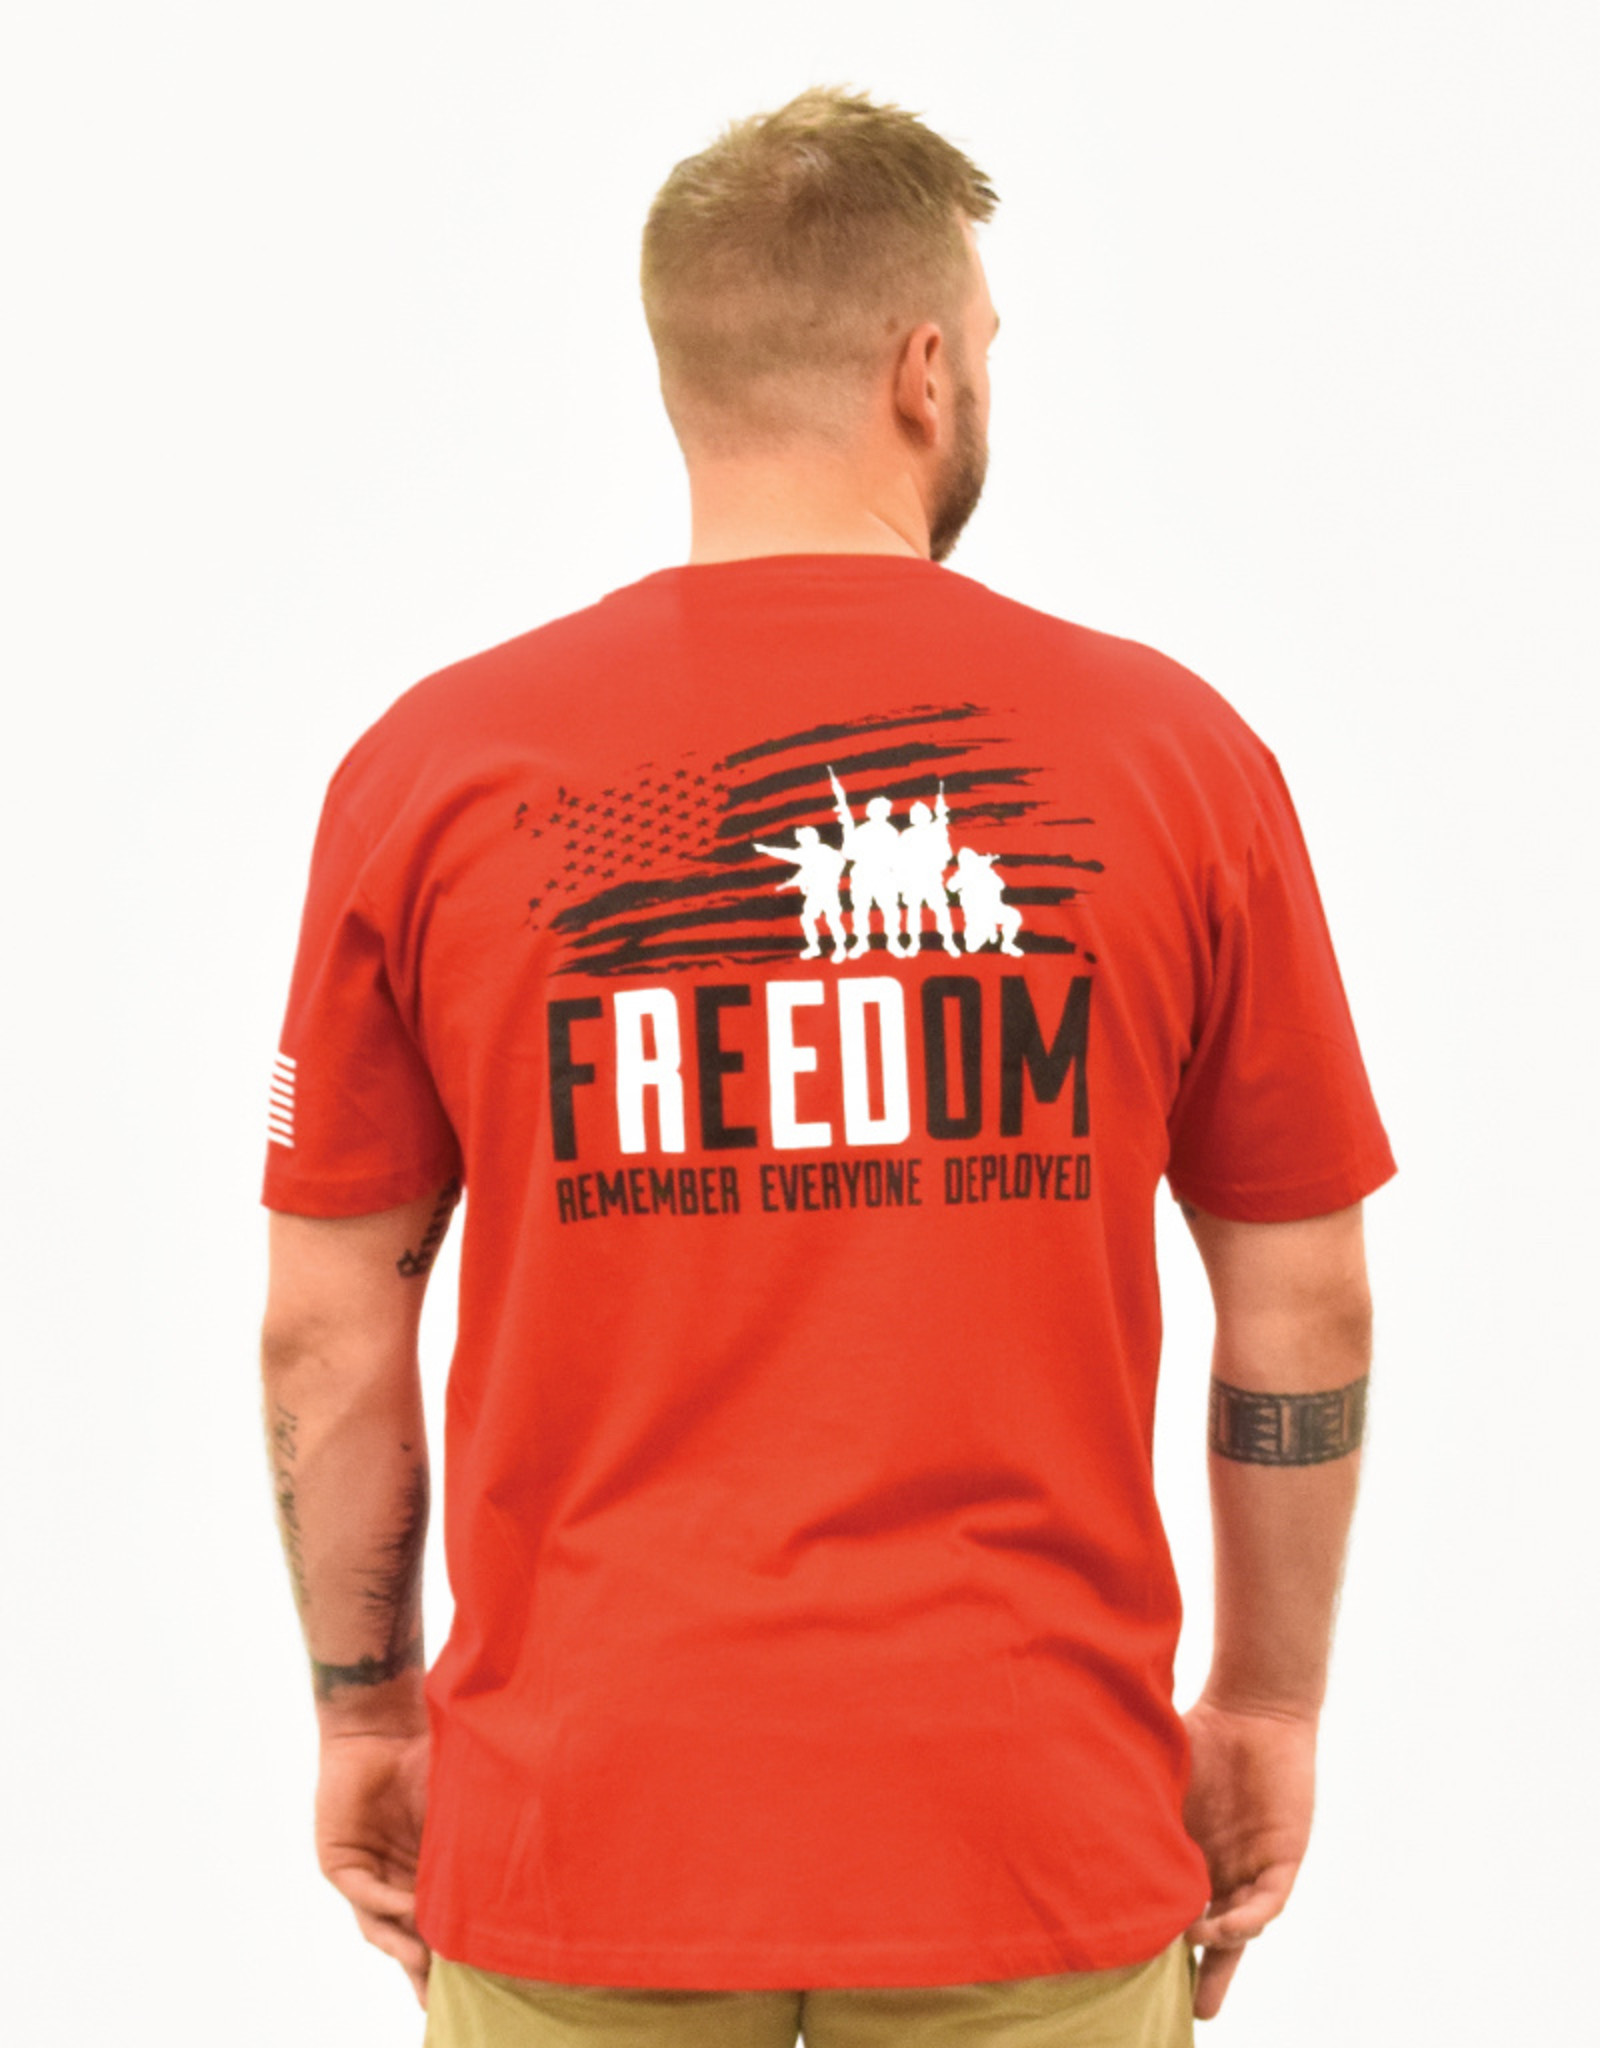 R.E.D. Remember Everyone Deployed T-Shirt